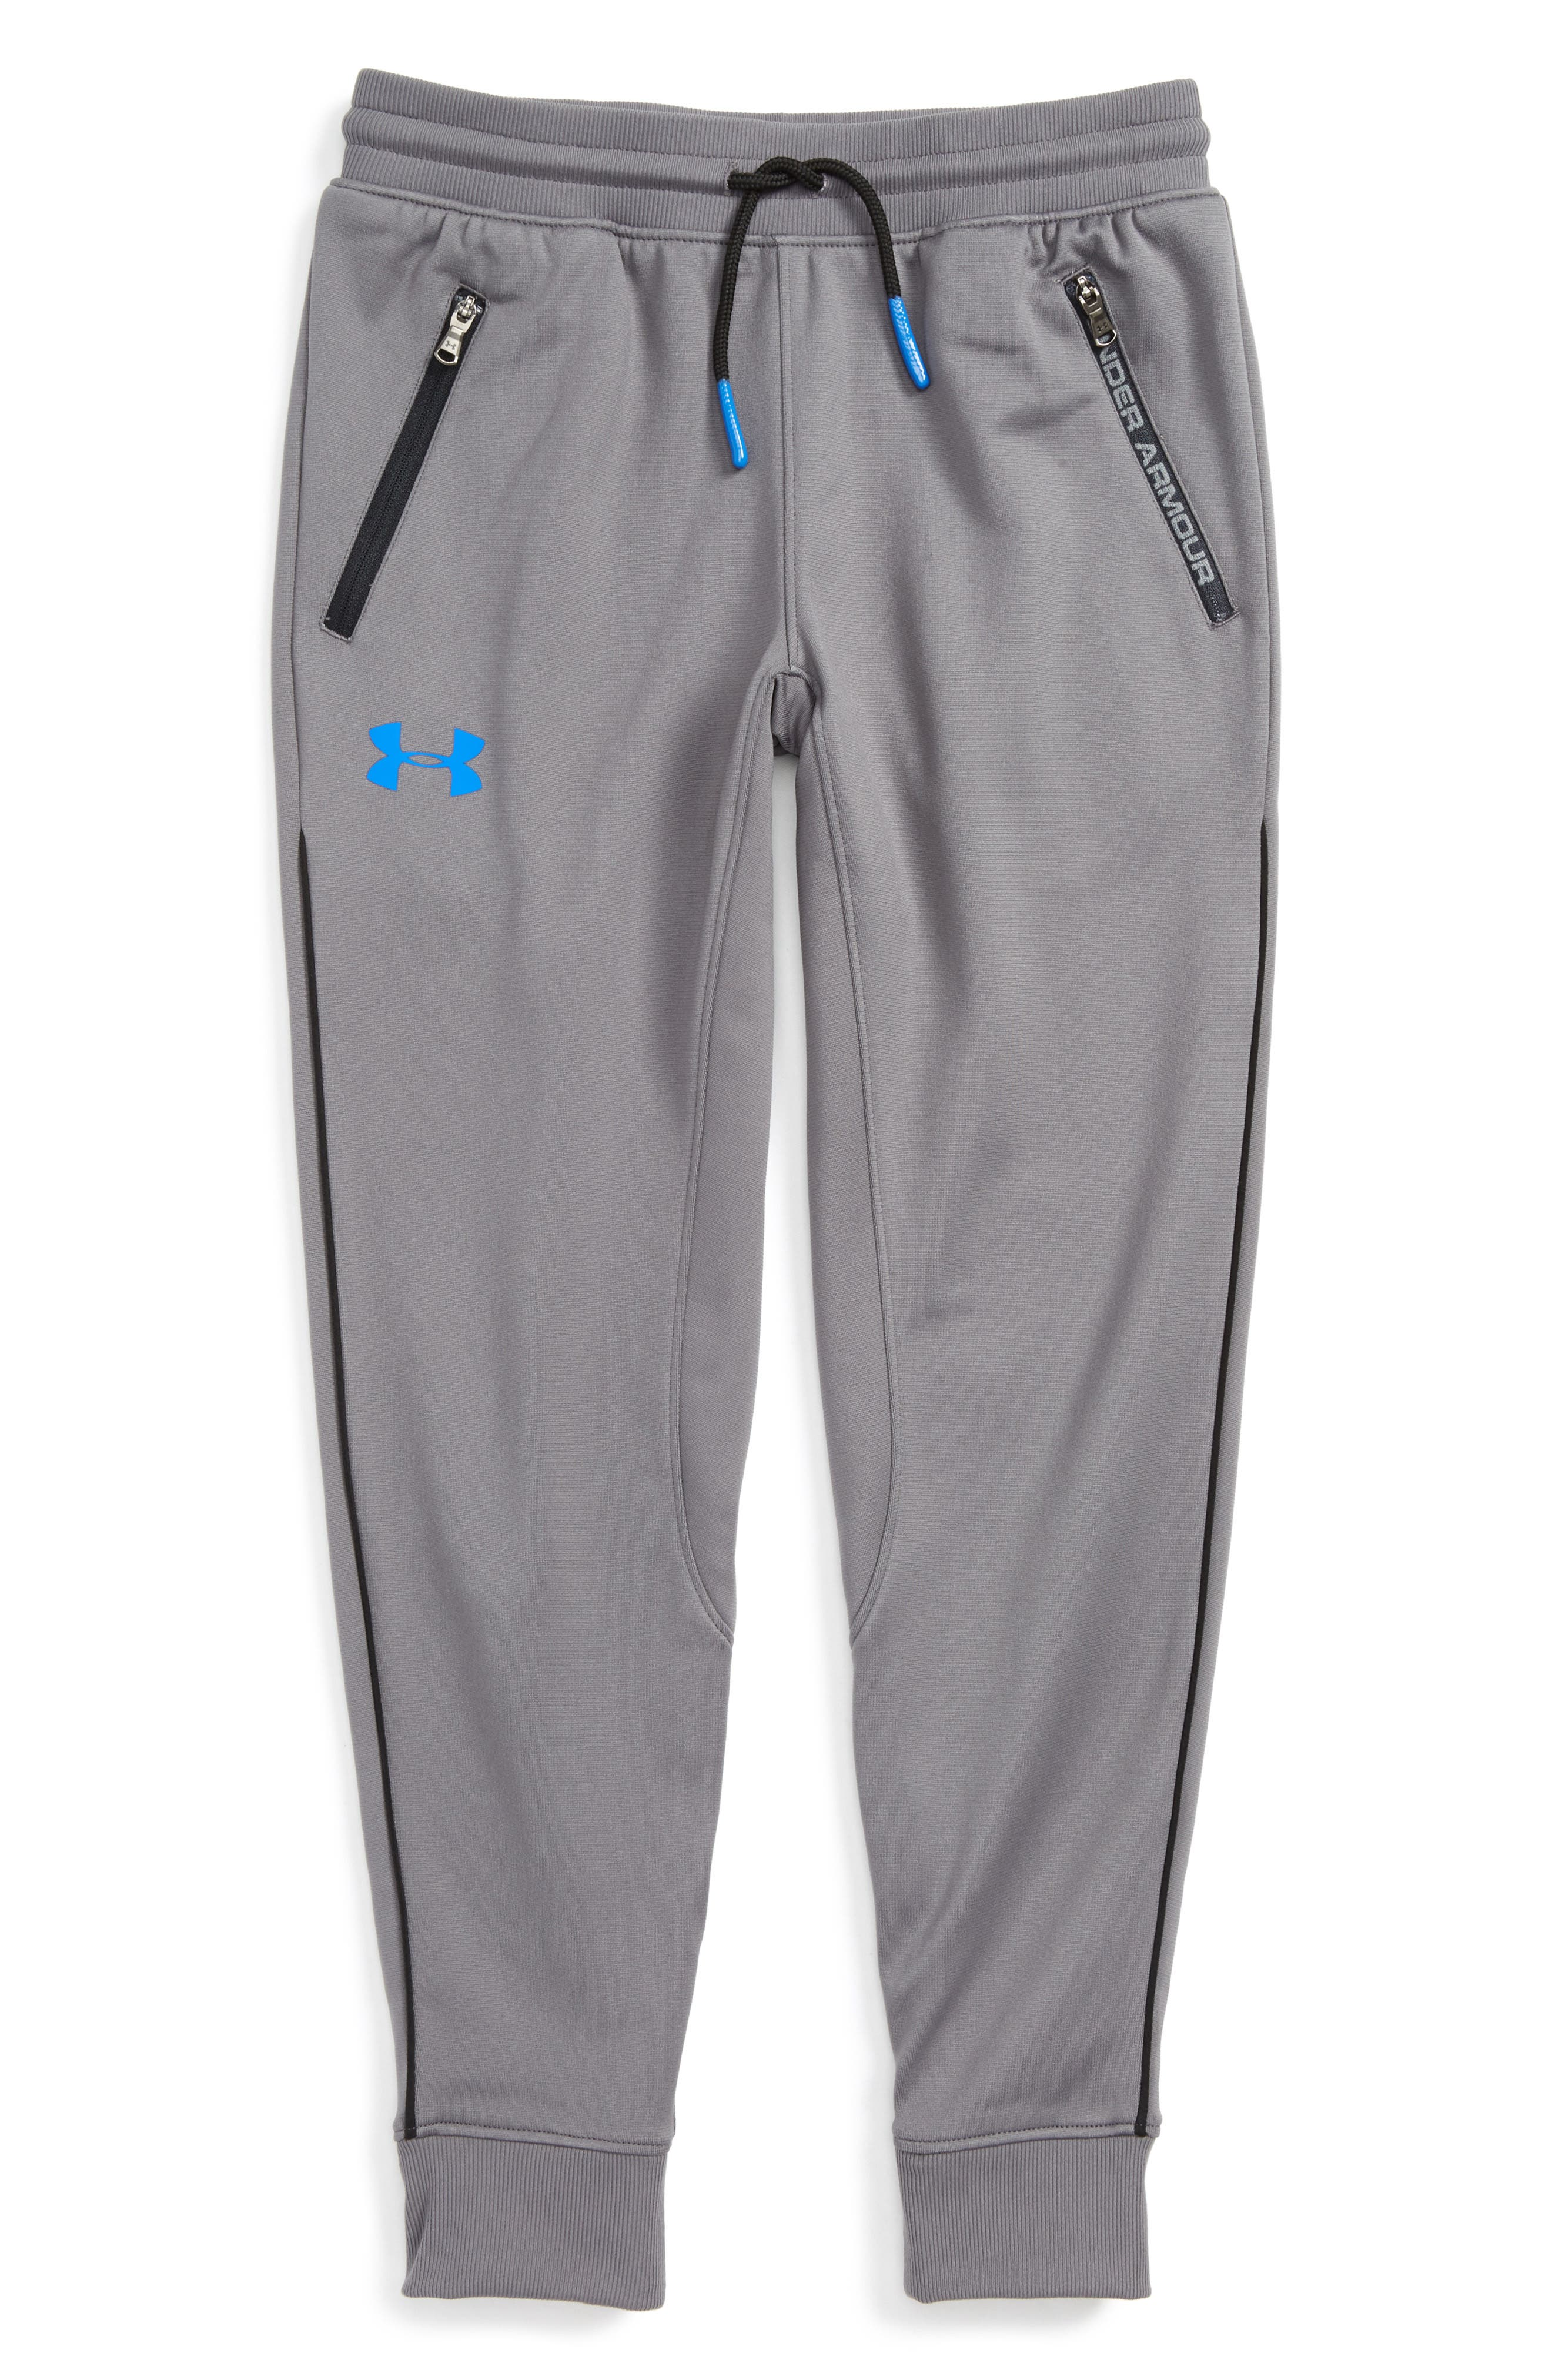 Alternate Image 1 Selected - Under Armour 'Pennant' Tapered Pants (Little Boys & Big Boys)